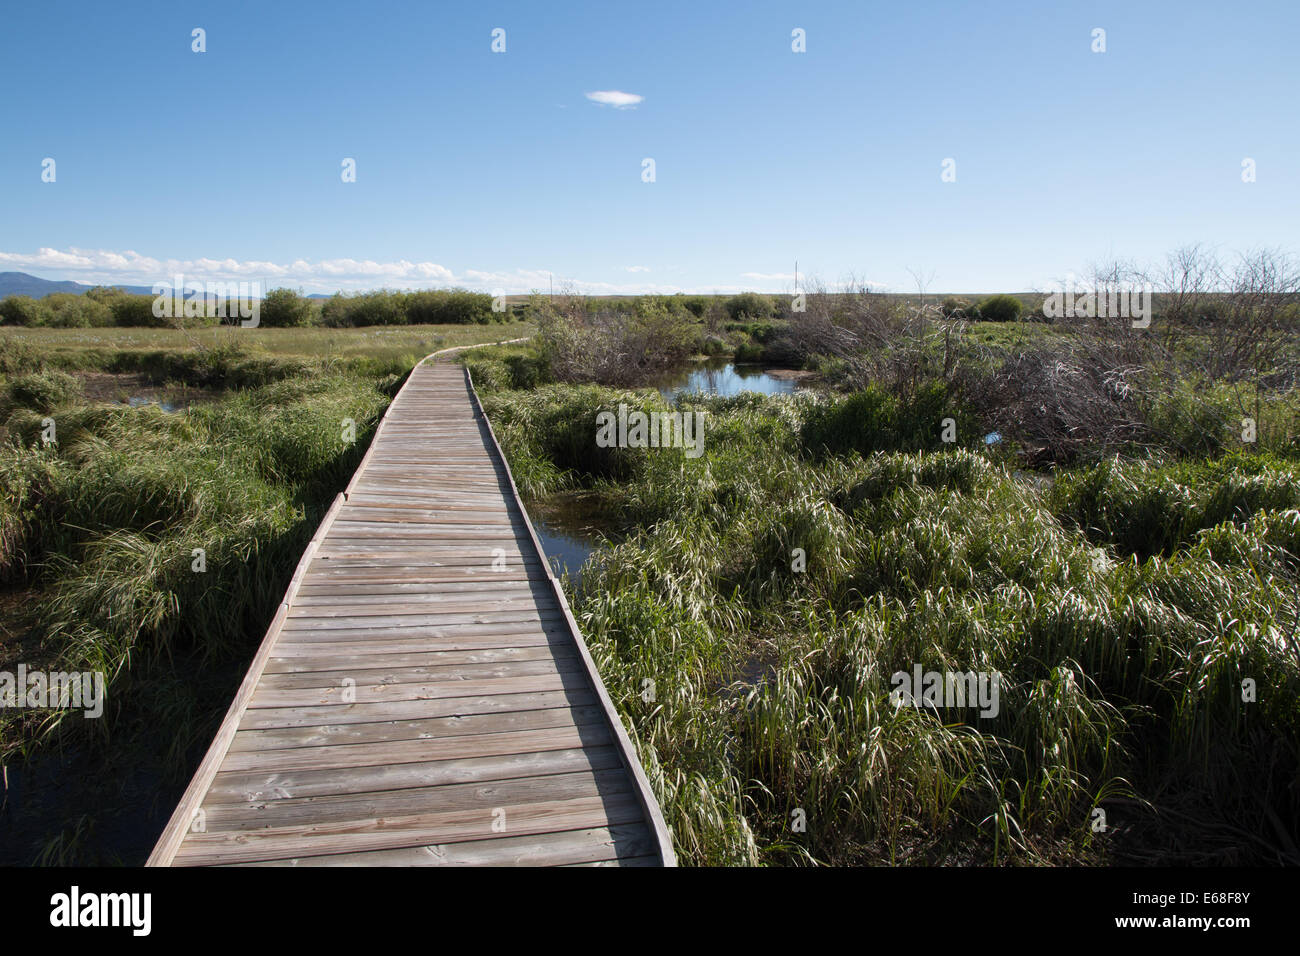 Wooden Footpath through Riparian Area - Stock Image